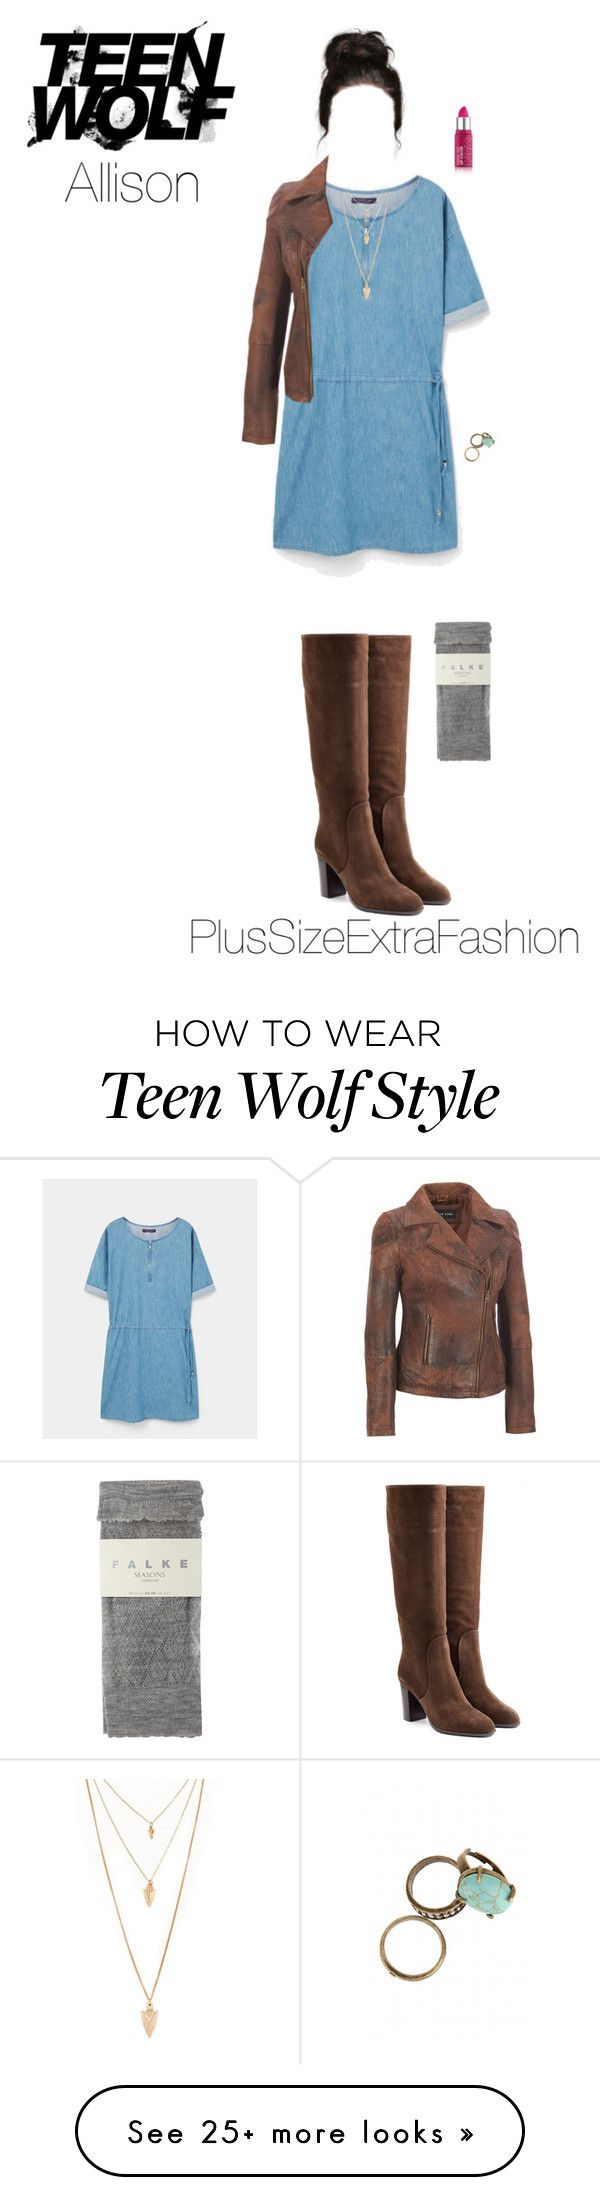 """""""Allison Inspired Plus Size Spring Outfit"""" by plussizeextrafashion on Polyvore featuring MANGO, Sergio Rossi, Forever 21, Rossetto, Falke, TeenWolf, plussize, Allison, spring2016 and plussizeextrafashion"""